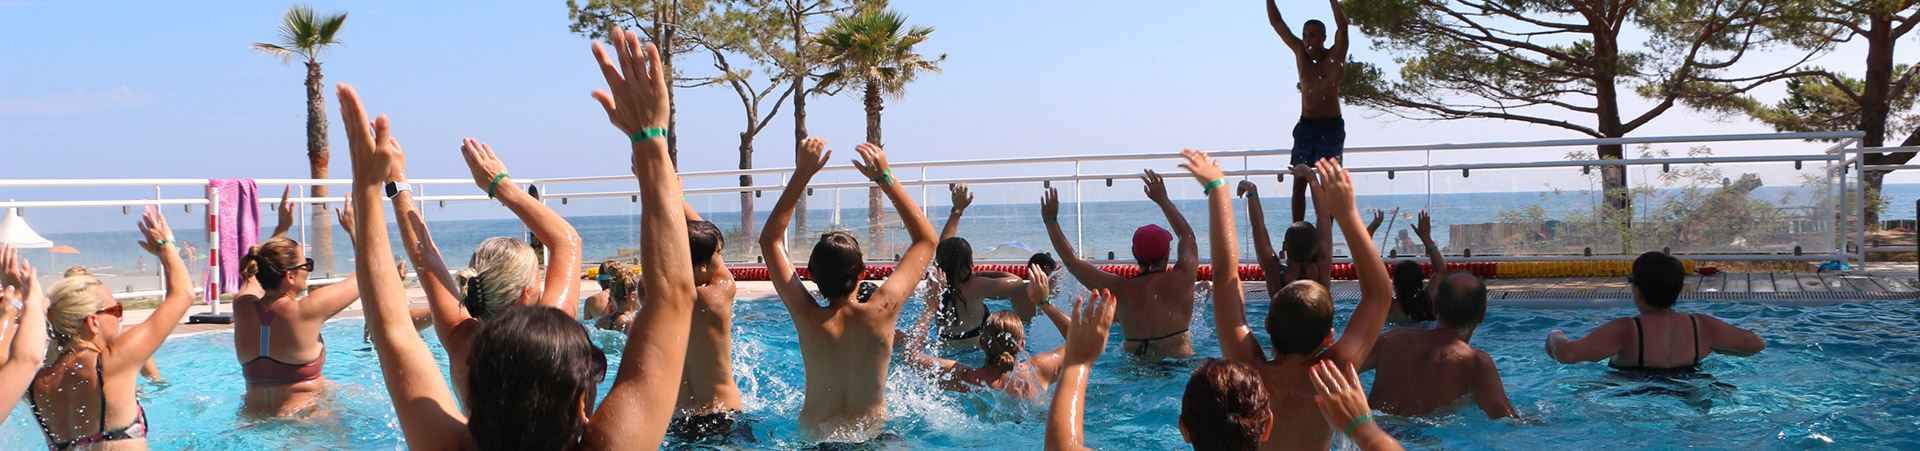 animations-piscine-camping-corse